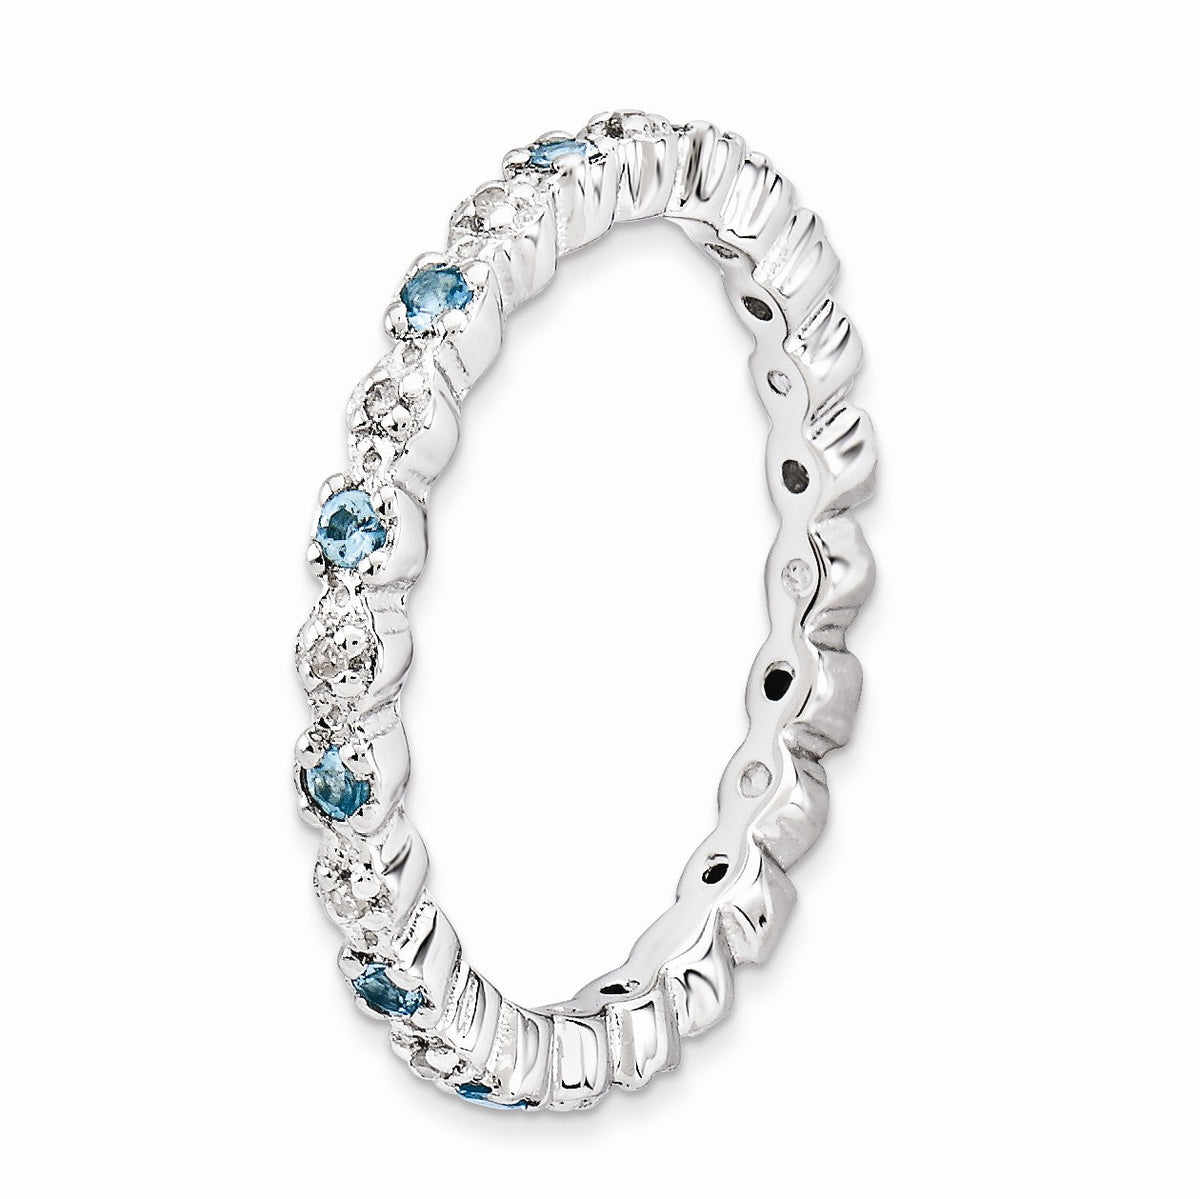 Alternate view of the 2.25mm Stackable Blue Topaz & .04 Ctw HI/I3 Diamond Silver Band by The Black Bow Jewelry Co.